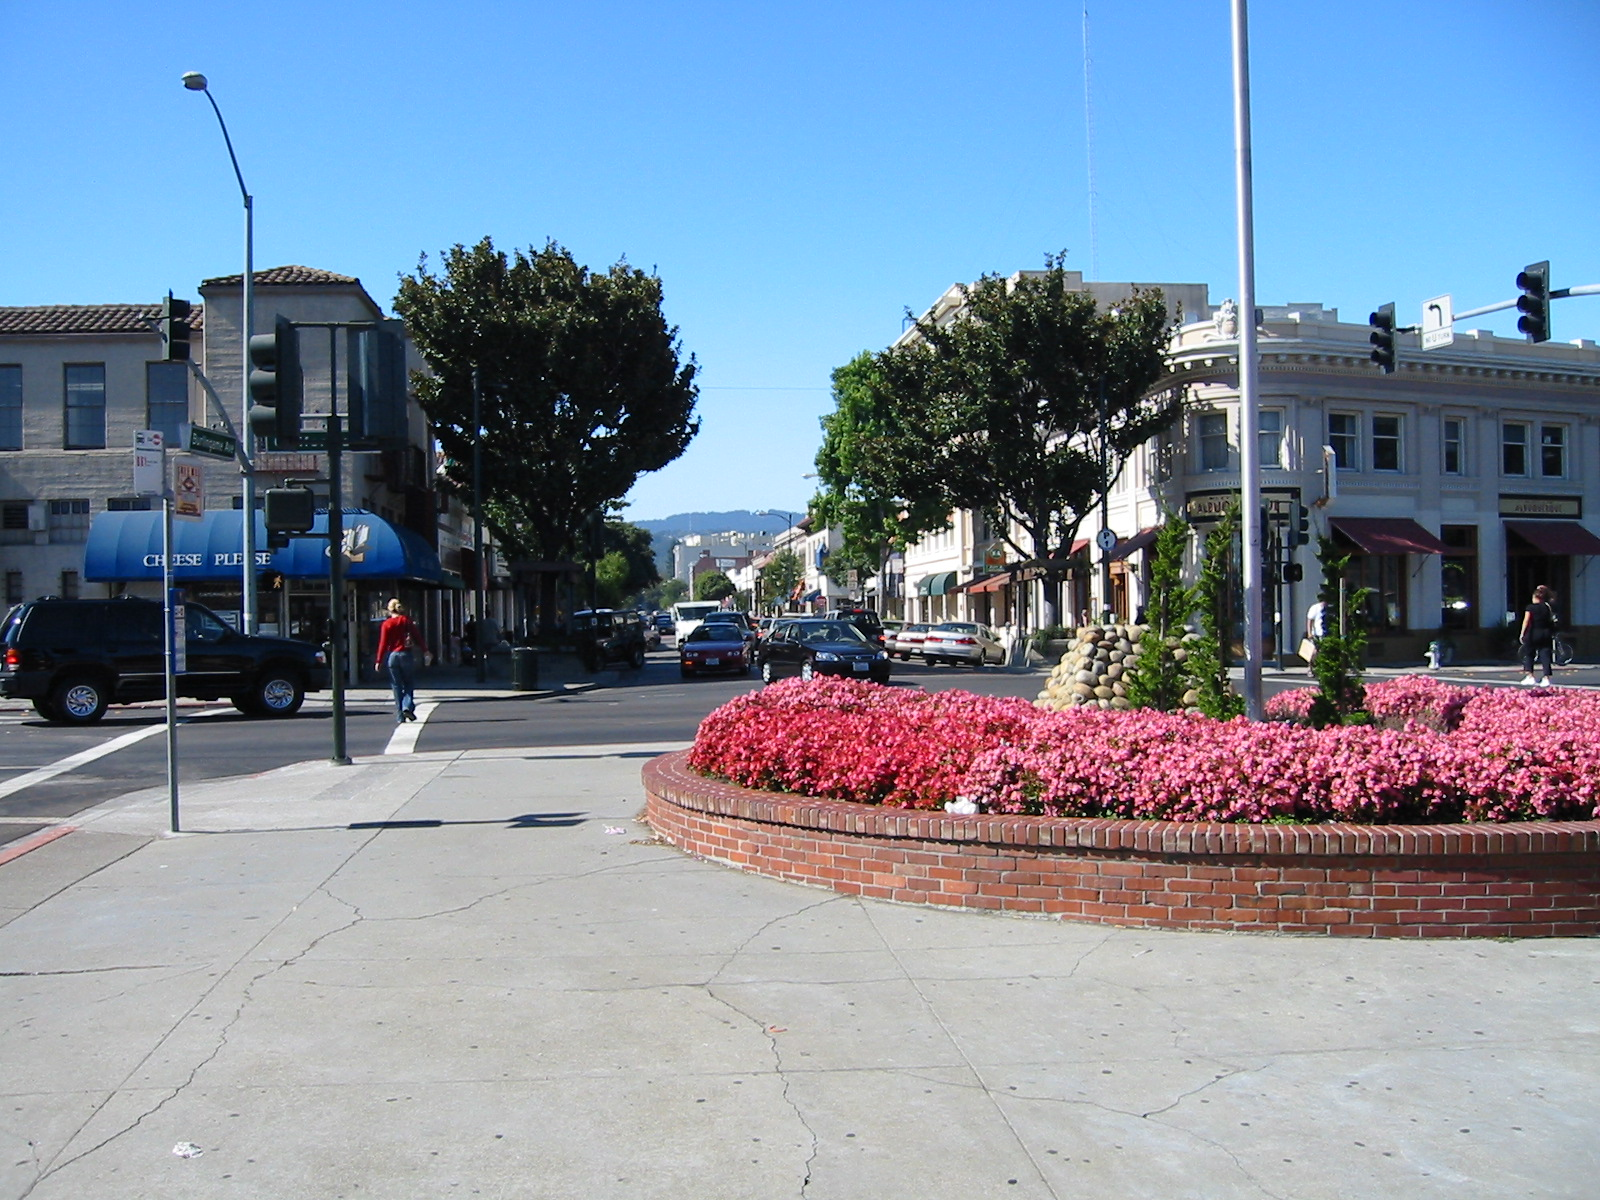 Burlingame Village, Burlingame, CA